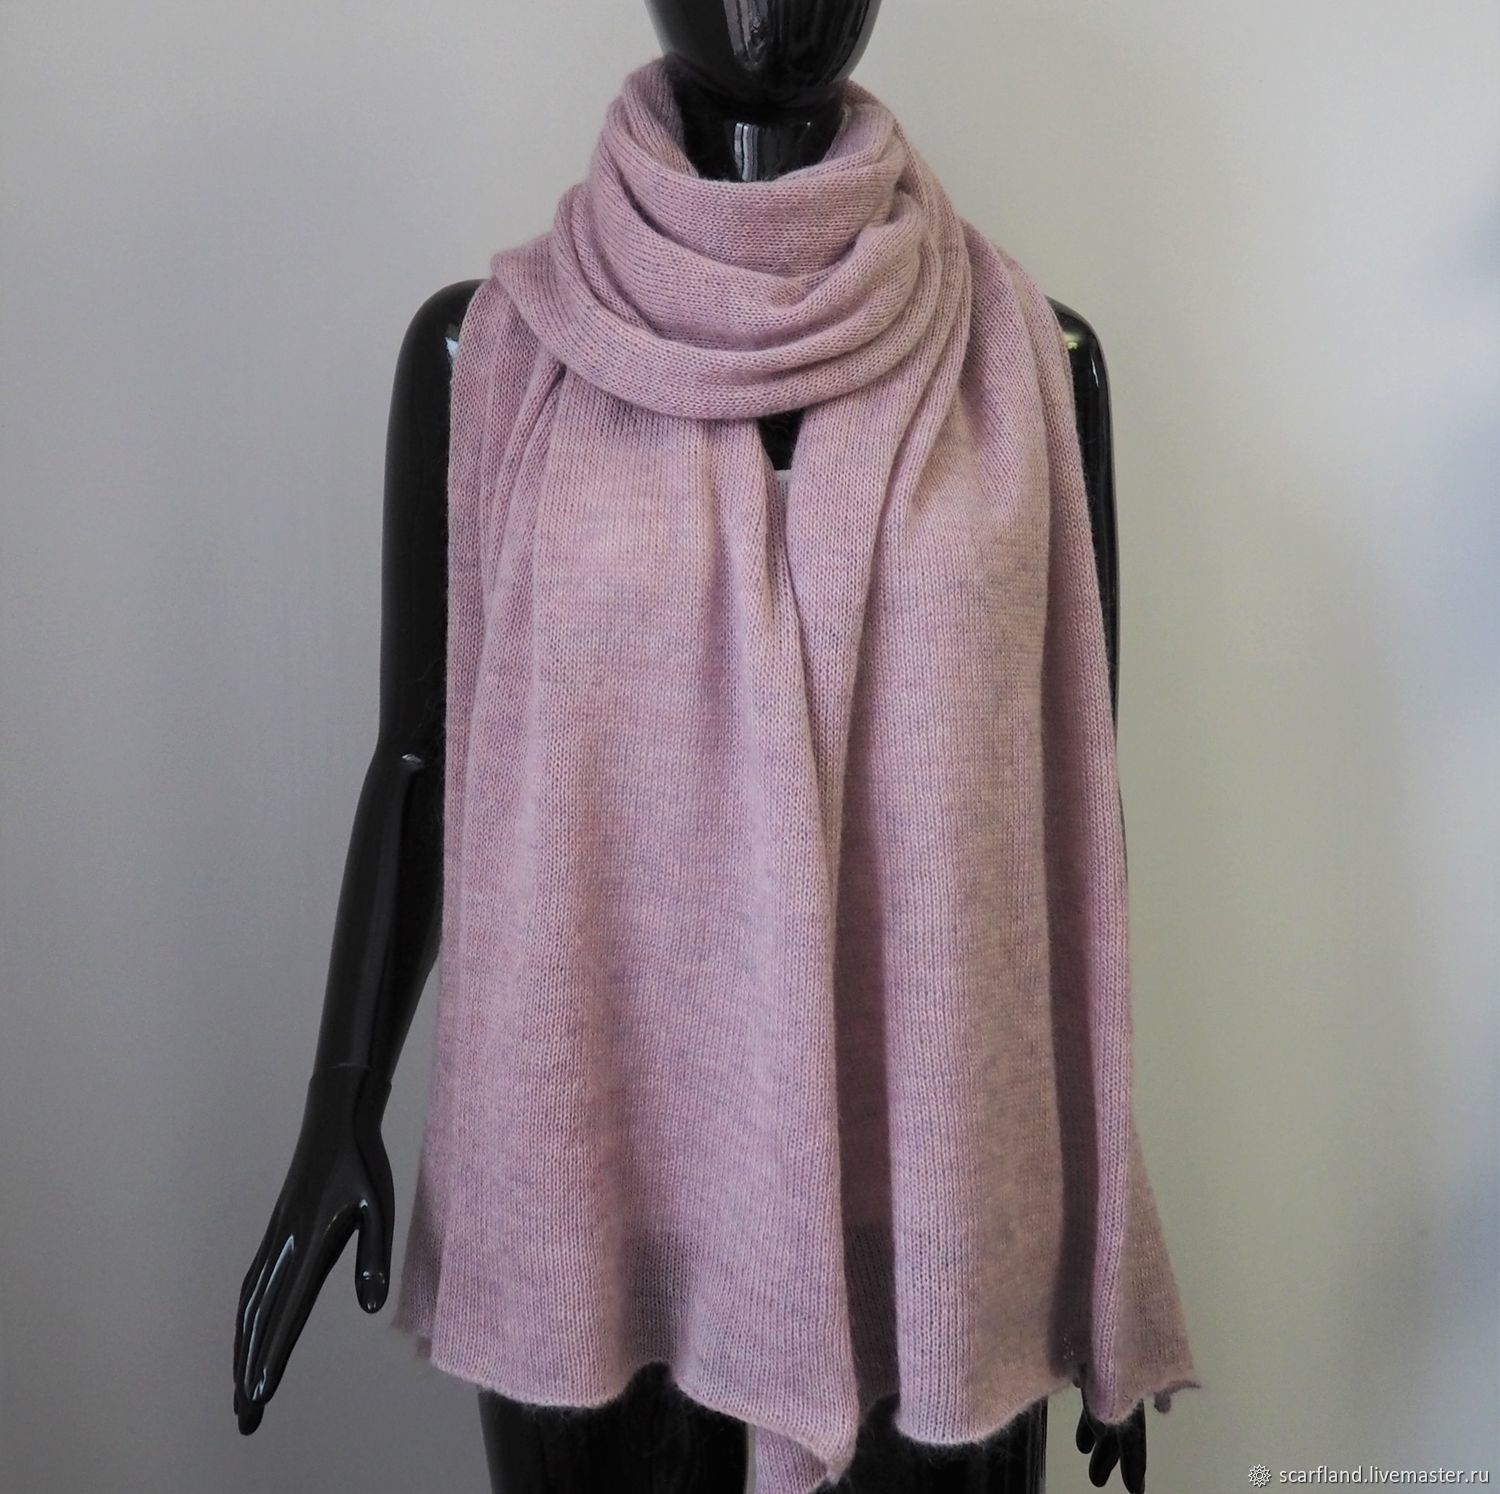 Stole scarf made of kid mohair and alpaca dusty rose, Wraps, Cheboksary,  Фото №1